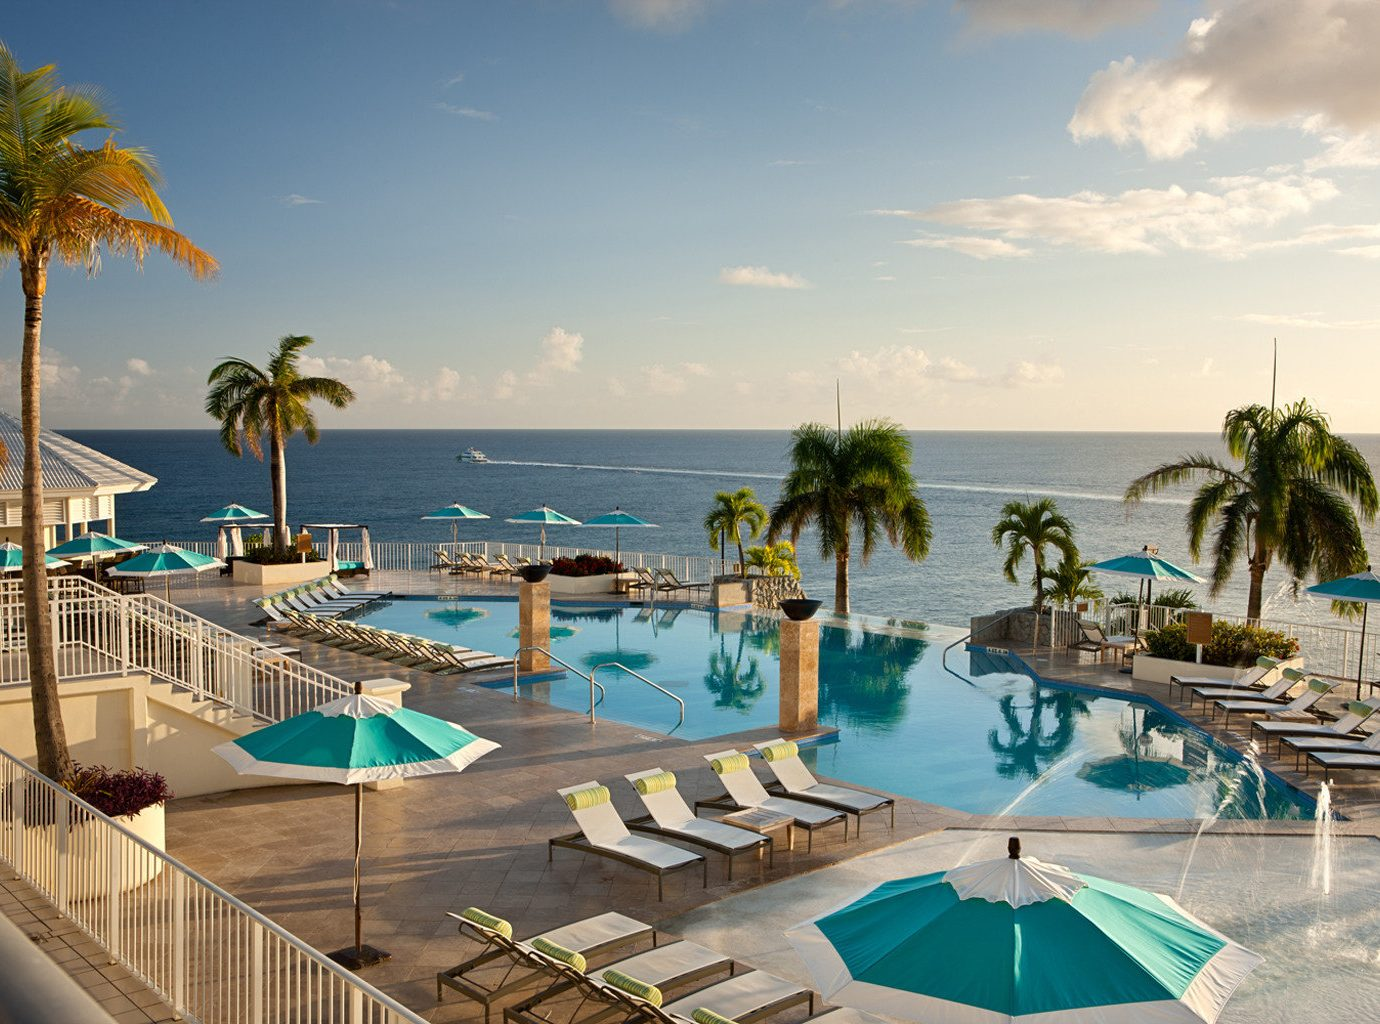 Grounds Honeymoon Hotels Pool Resort Romance Scenic views Trip Ideas Waterfront sky outdoor water umbrella leisure swimming pool caribbean vacation estate Sea palm Beach bay Villa Deck lined shore several